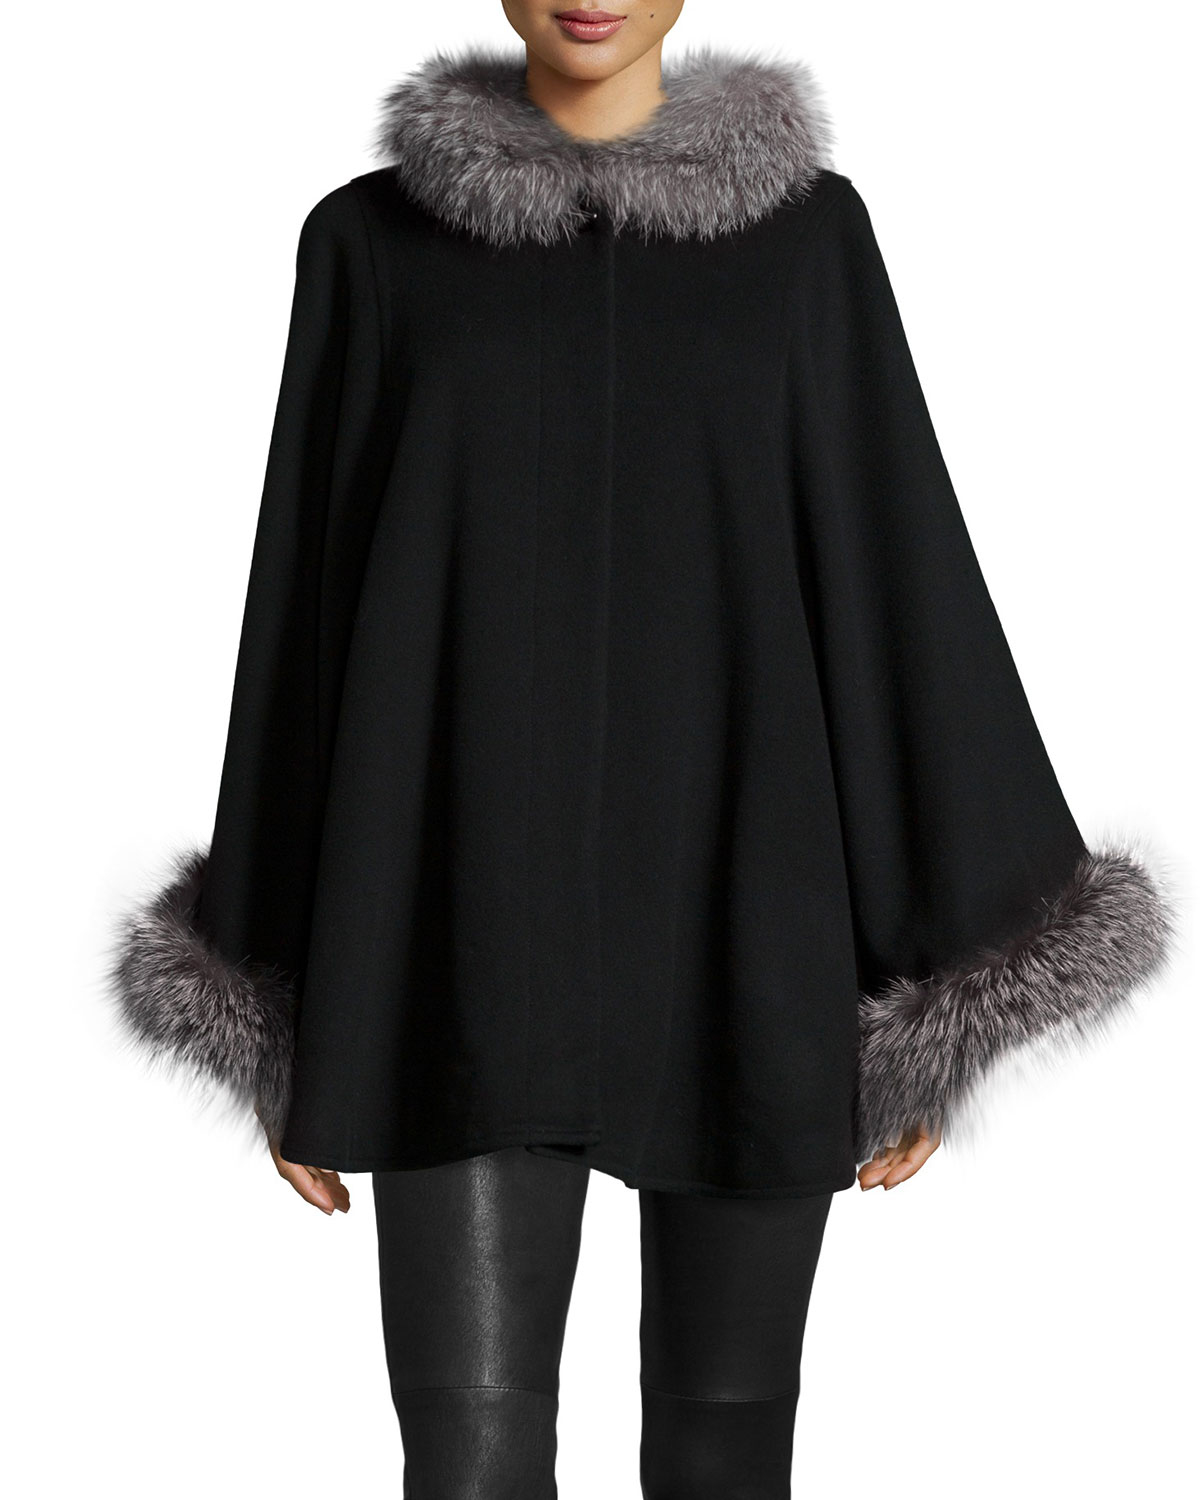 Sofia Cashmere Fur Collar Wool Cashmere Cape In Black Lyst